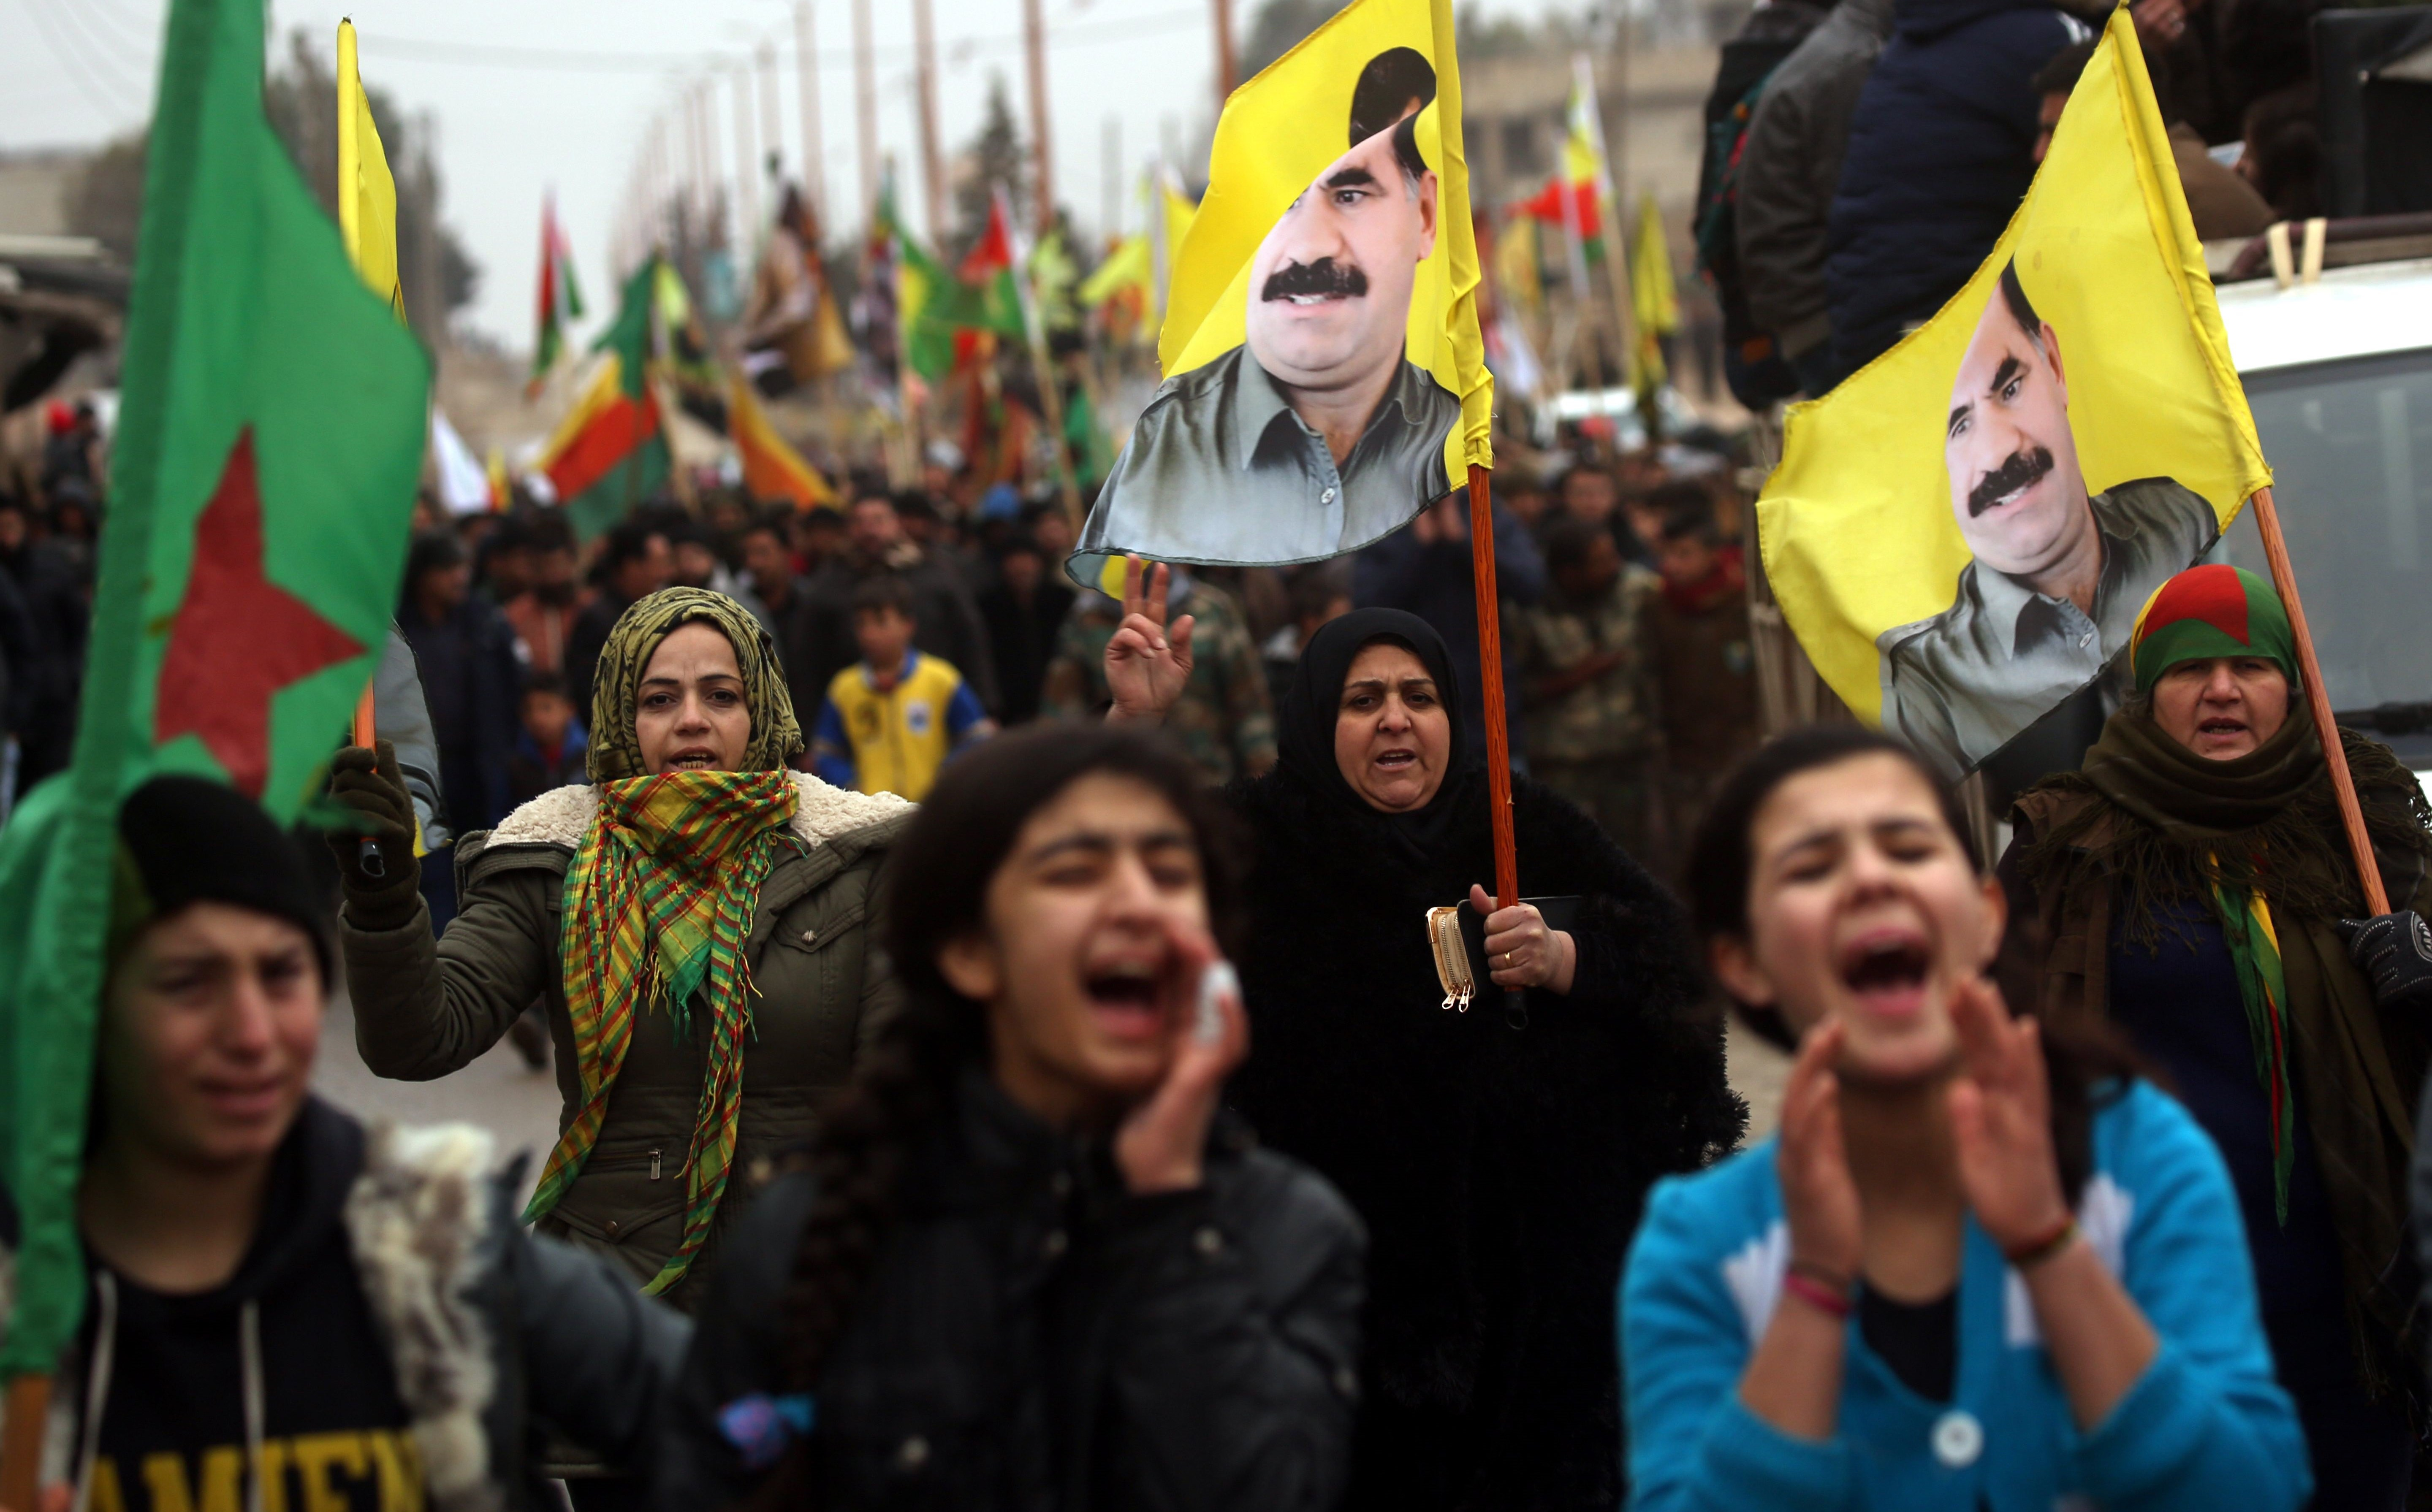 Kurds in the Rojava town of Jawadiyah march in support of Afrin on Thursday. Photo: Delil Souleiman/AFP